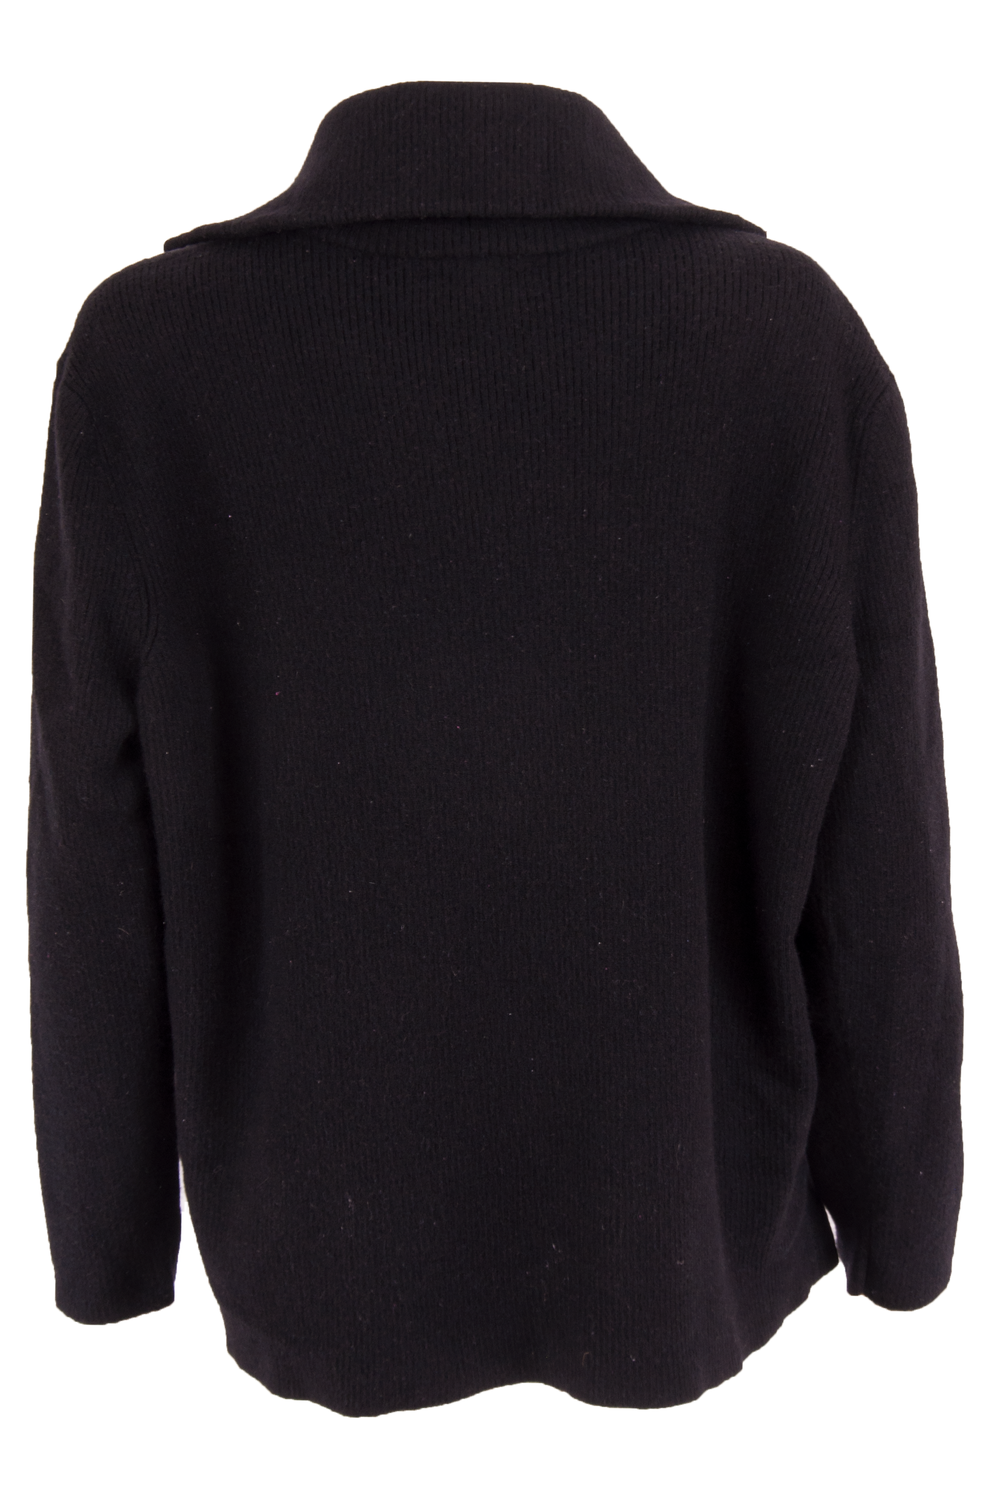 vintage black sweater